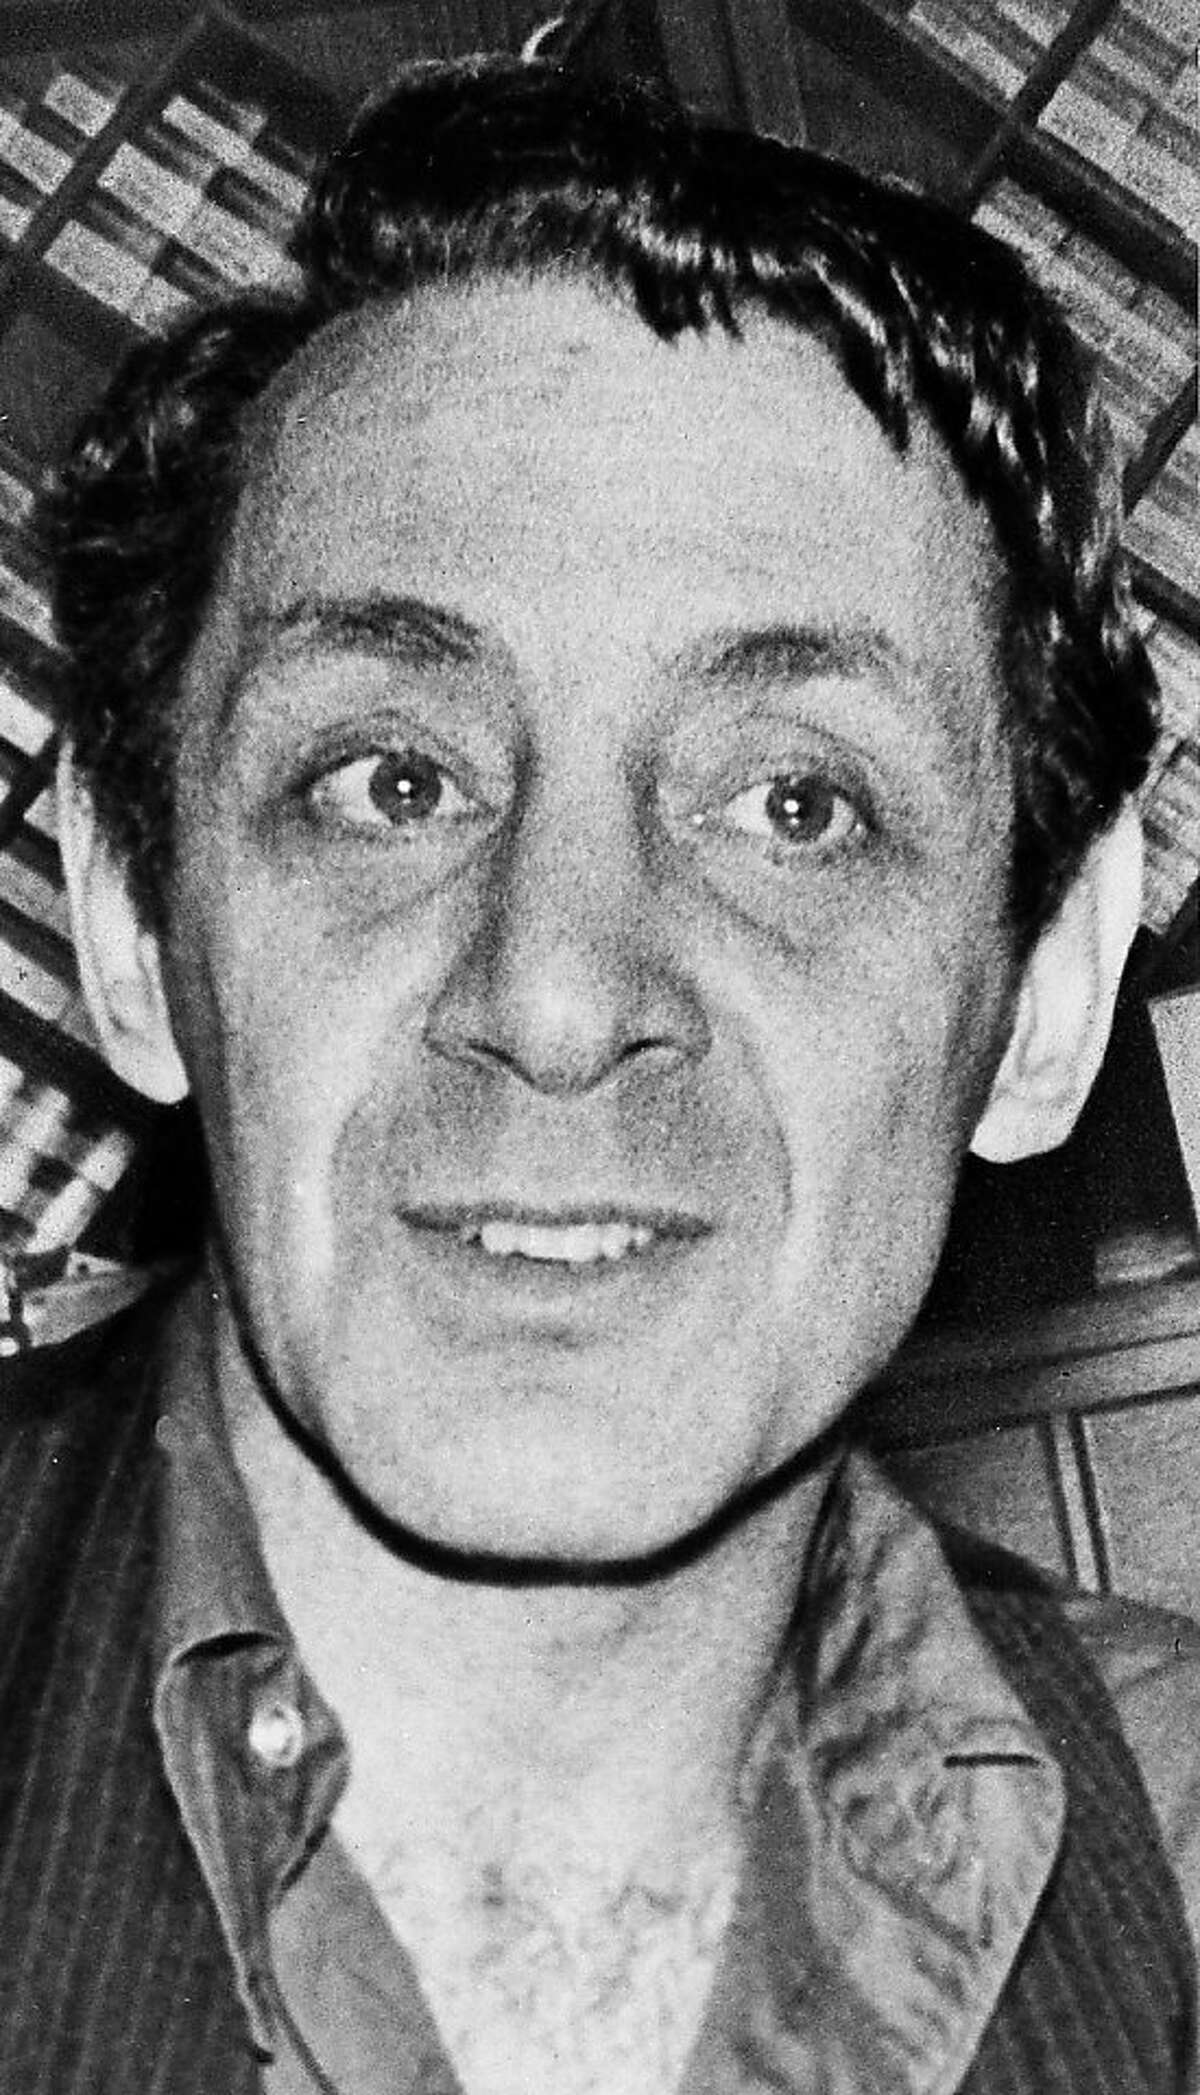 In this June 28, 1977 black-and-white file photo, Harvey Milk, a gay political leader in San Francisco, is seen pictured in his camera store on Castro Street in San Francisco. President Barack Obama will recognize the accomplishments of actors, activists and athletes on Wednesday when he awards the Presidential Medal of Freedom to 16 people. (AP Photo, FILE)